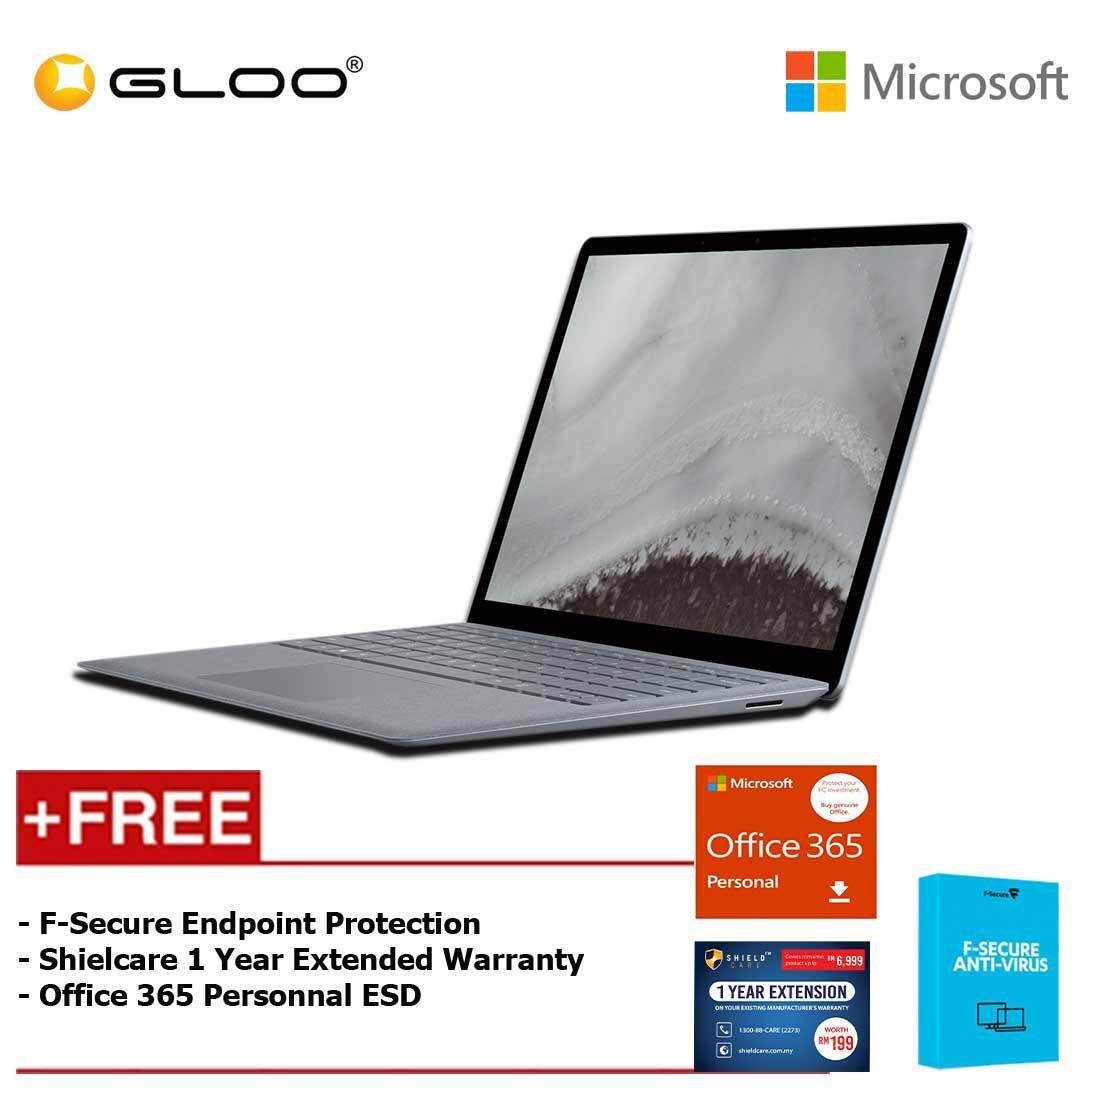 Microsoft Surface Laptop 2 Core i5/8GB RAM - 256GB + Office 365 Personal (ESD) + Shieldcare 1 Year Extended Warranty + F-Secure EndPoint Protection